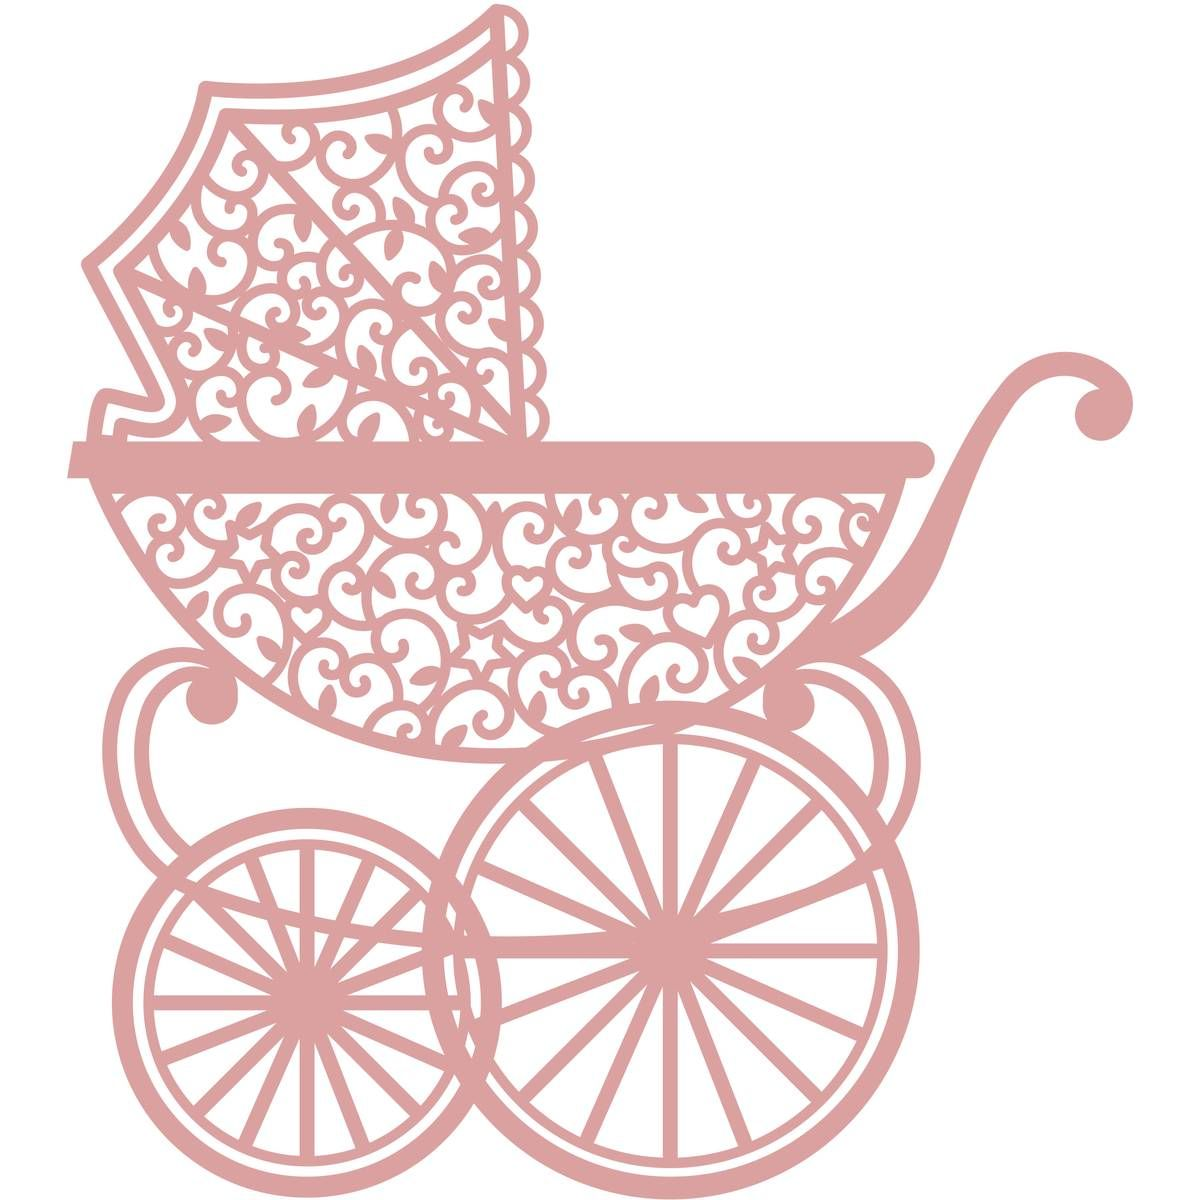 White Large Intricut Pram Die Cuts